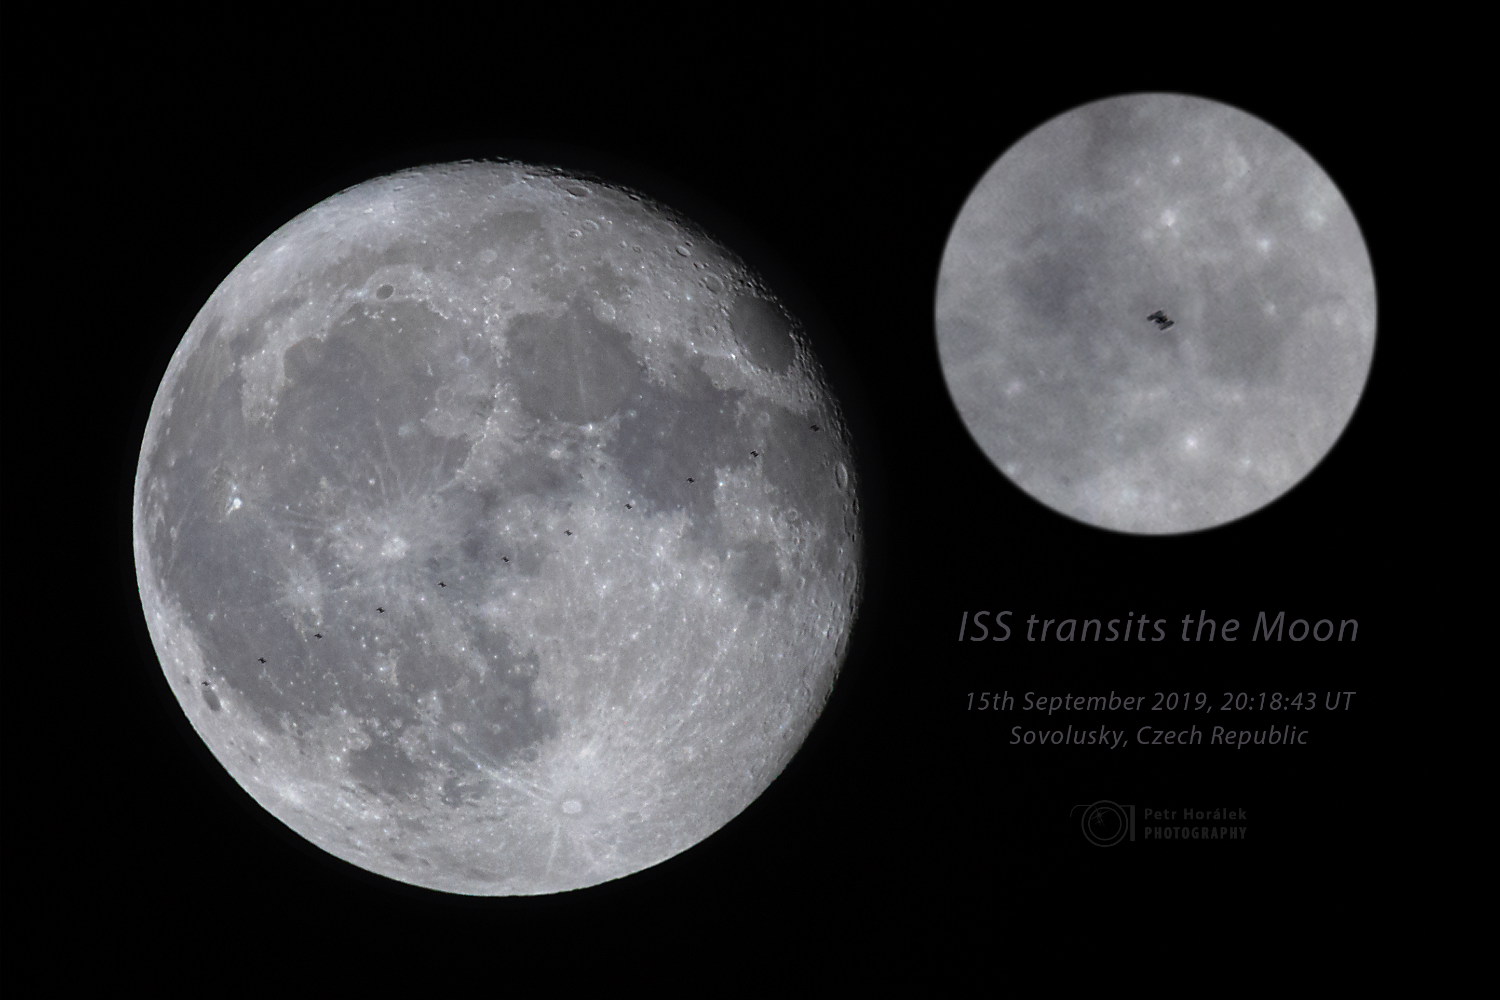 Cosmic Station transits the Moon